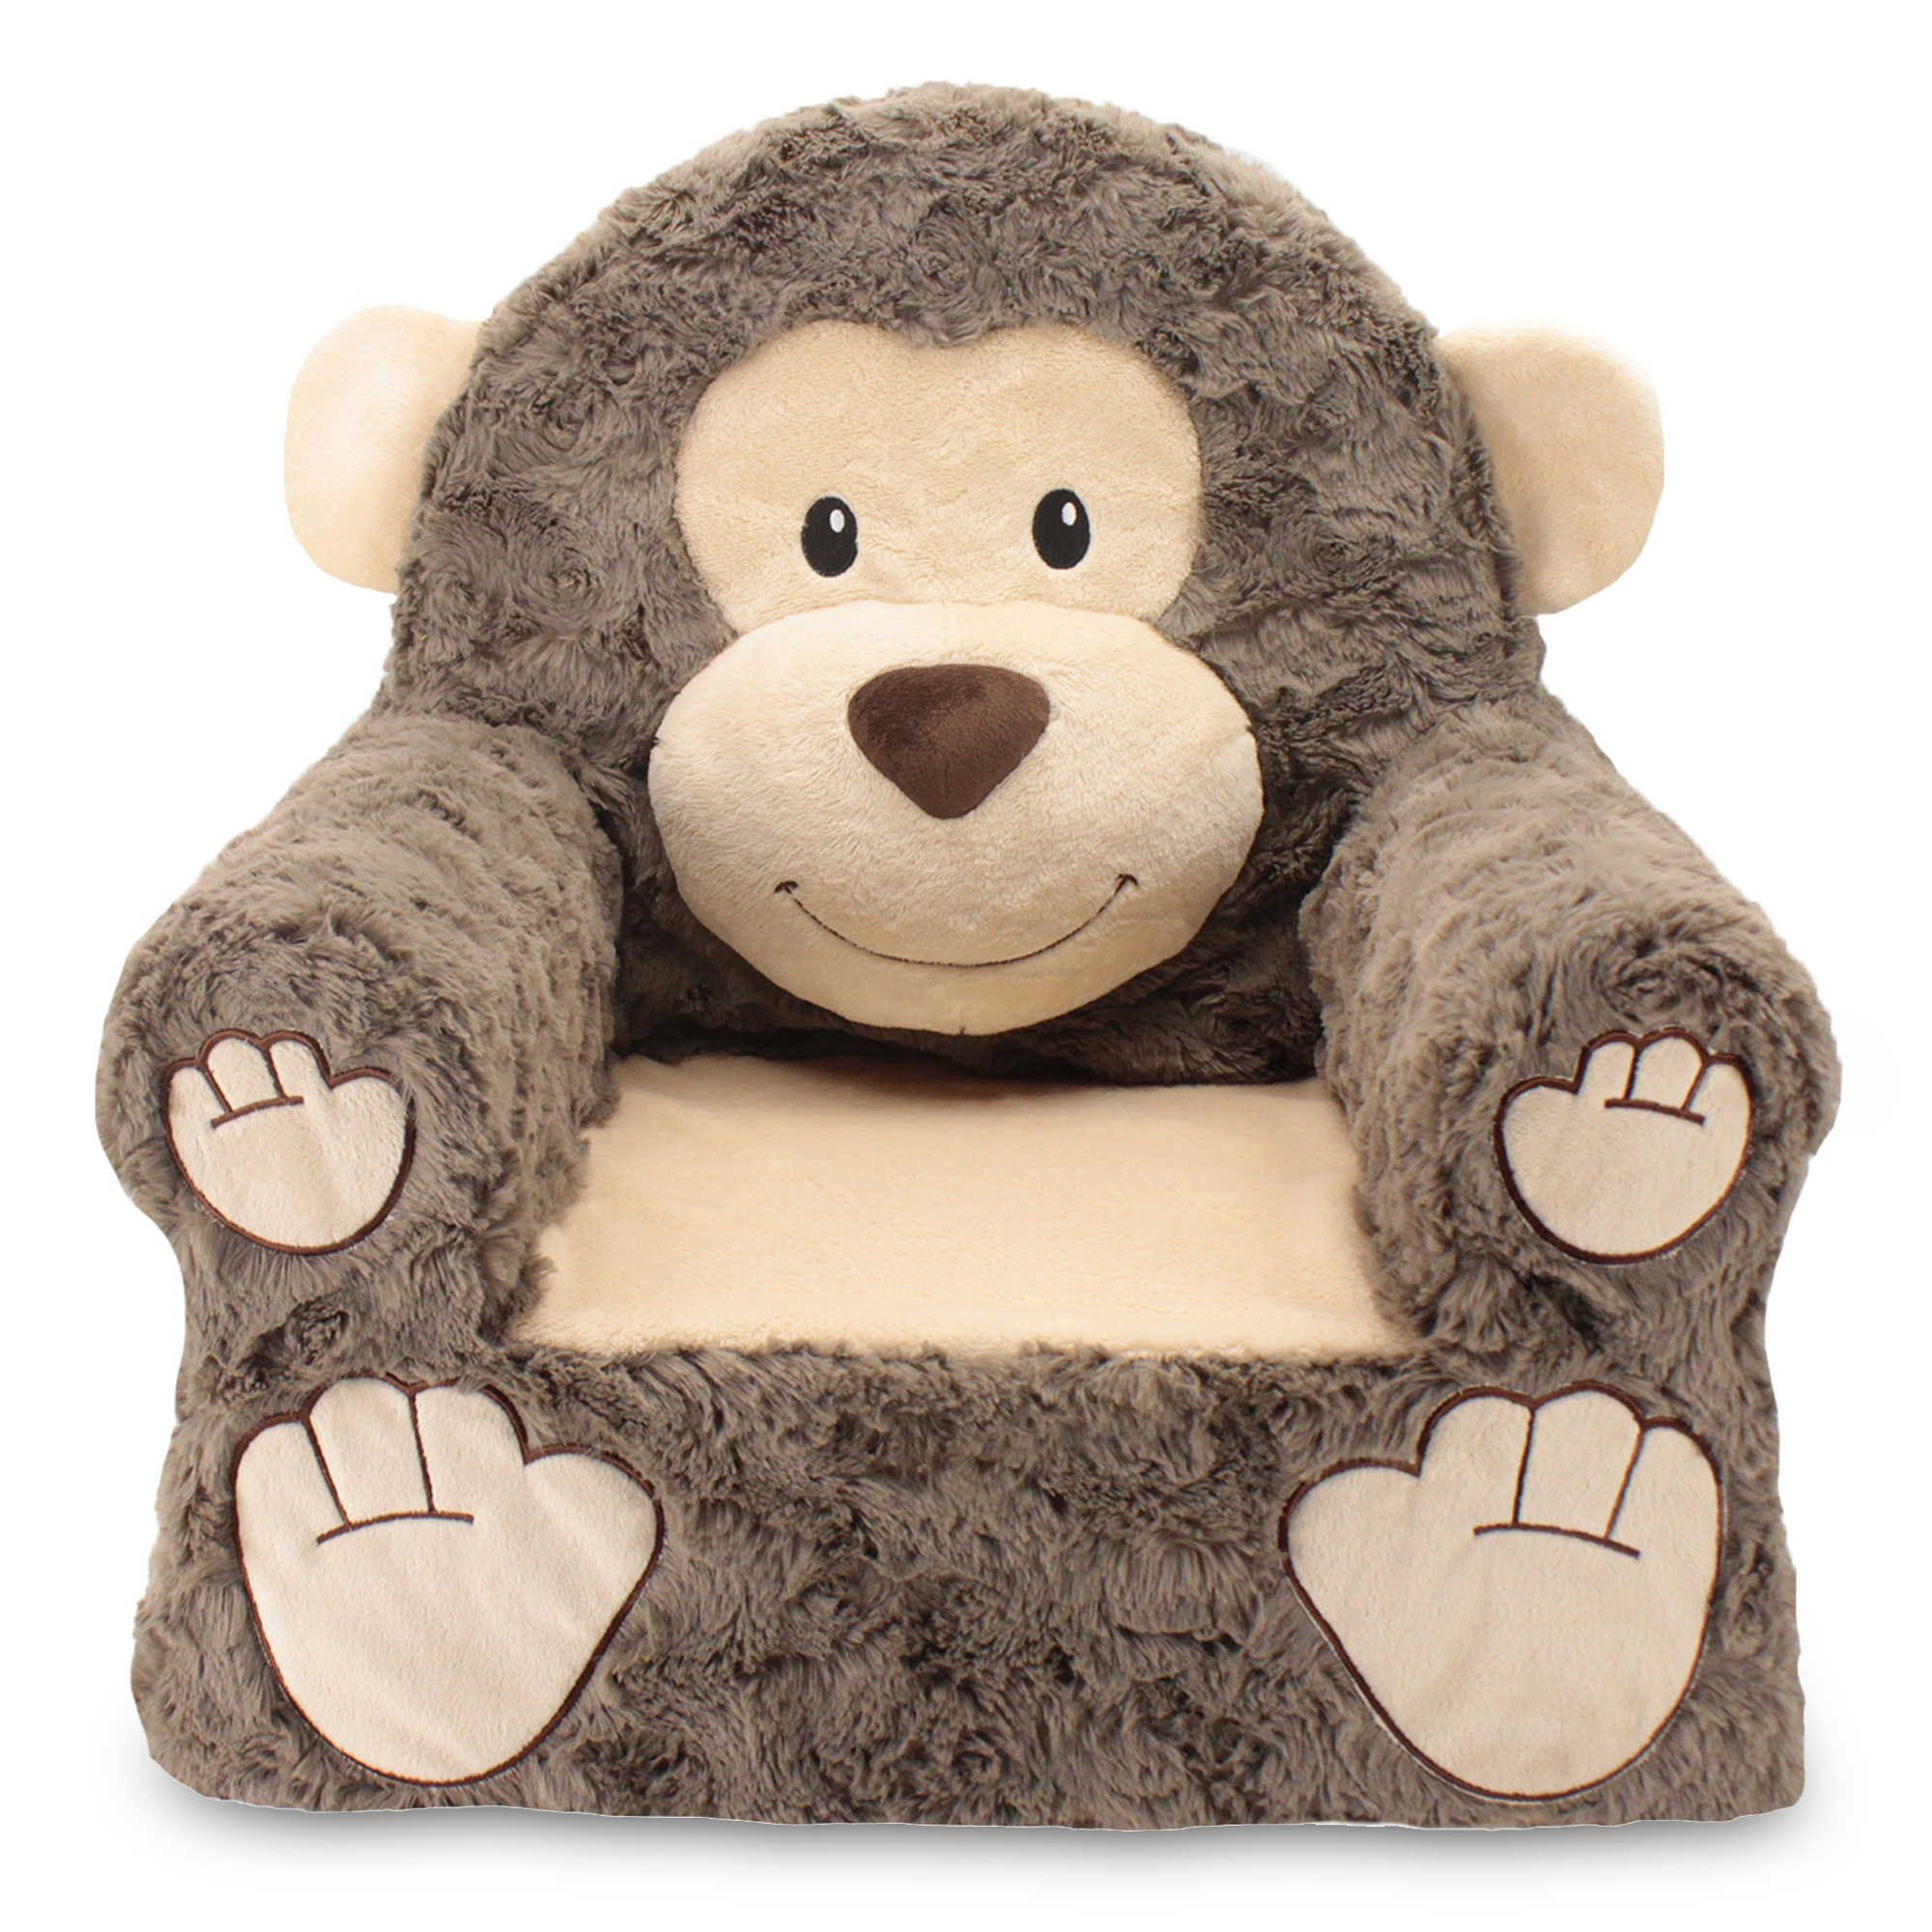 Sweet Seats Sturdy, Soft, Cozy and Adorable, Plush Monkey Chair in Brown with Sweet Embroidered Details on the Face, Hands and Feet